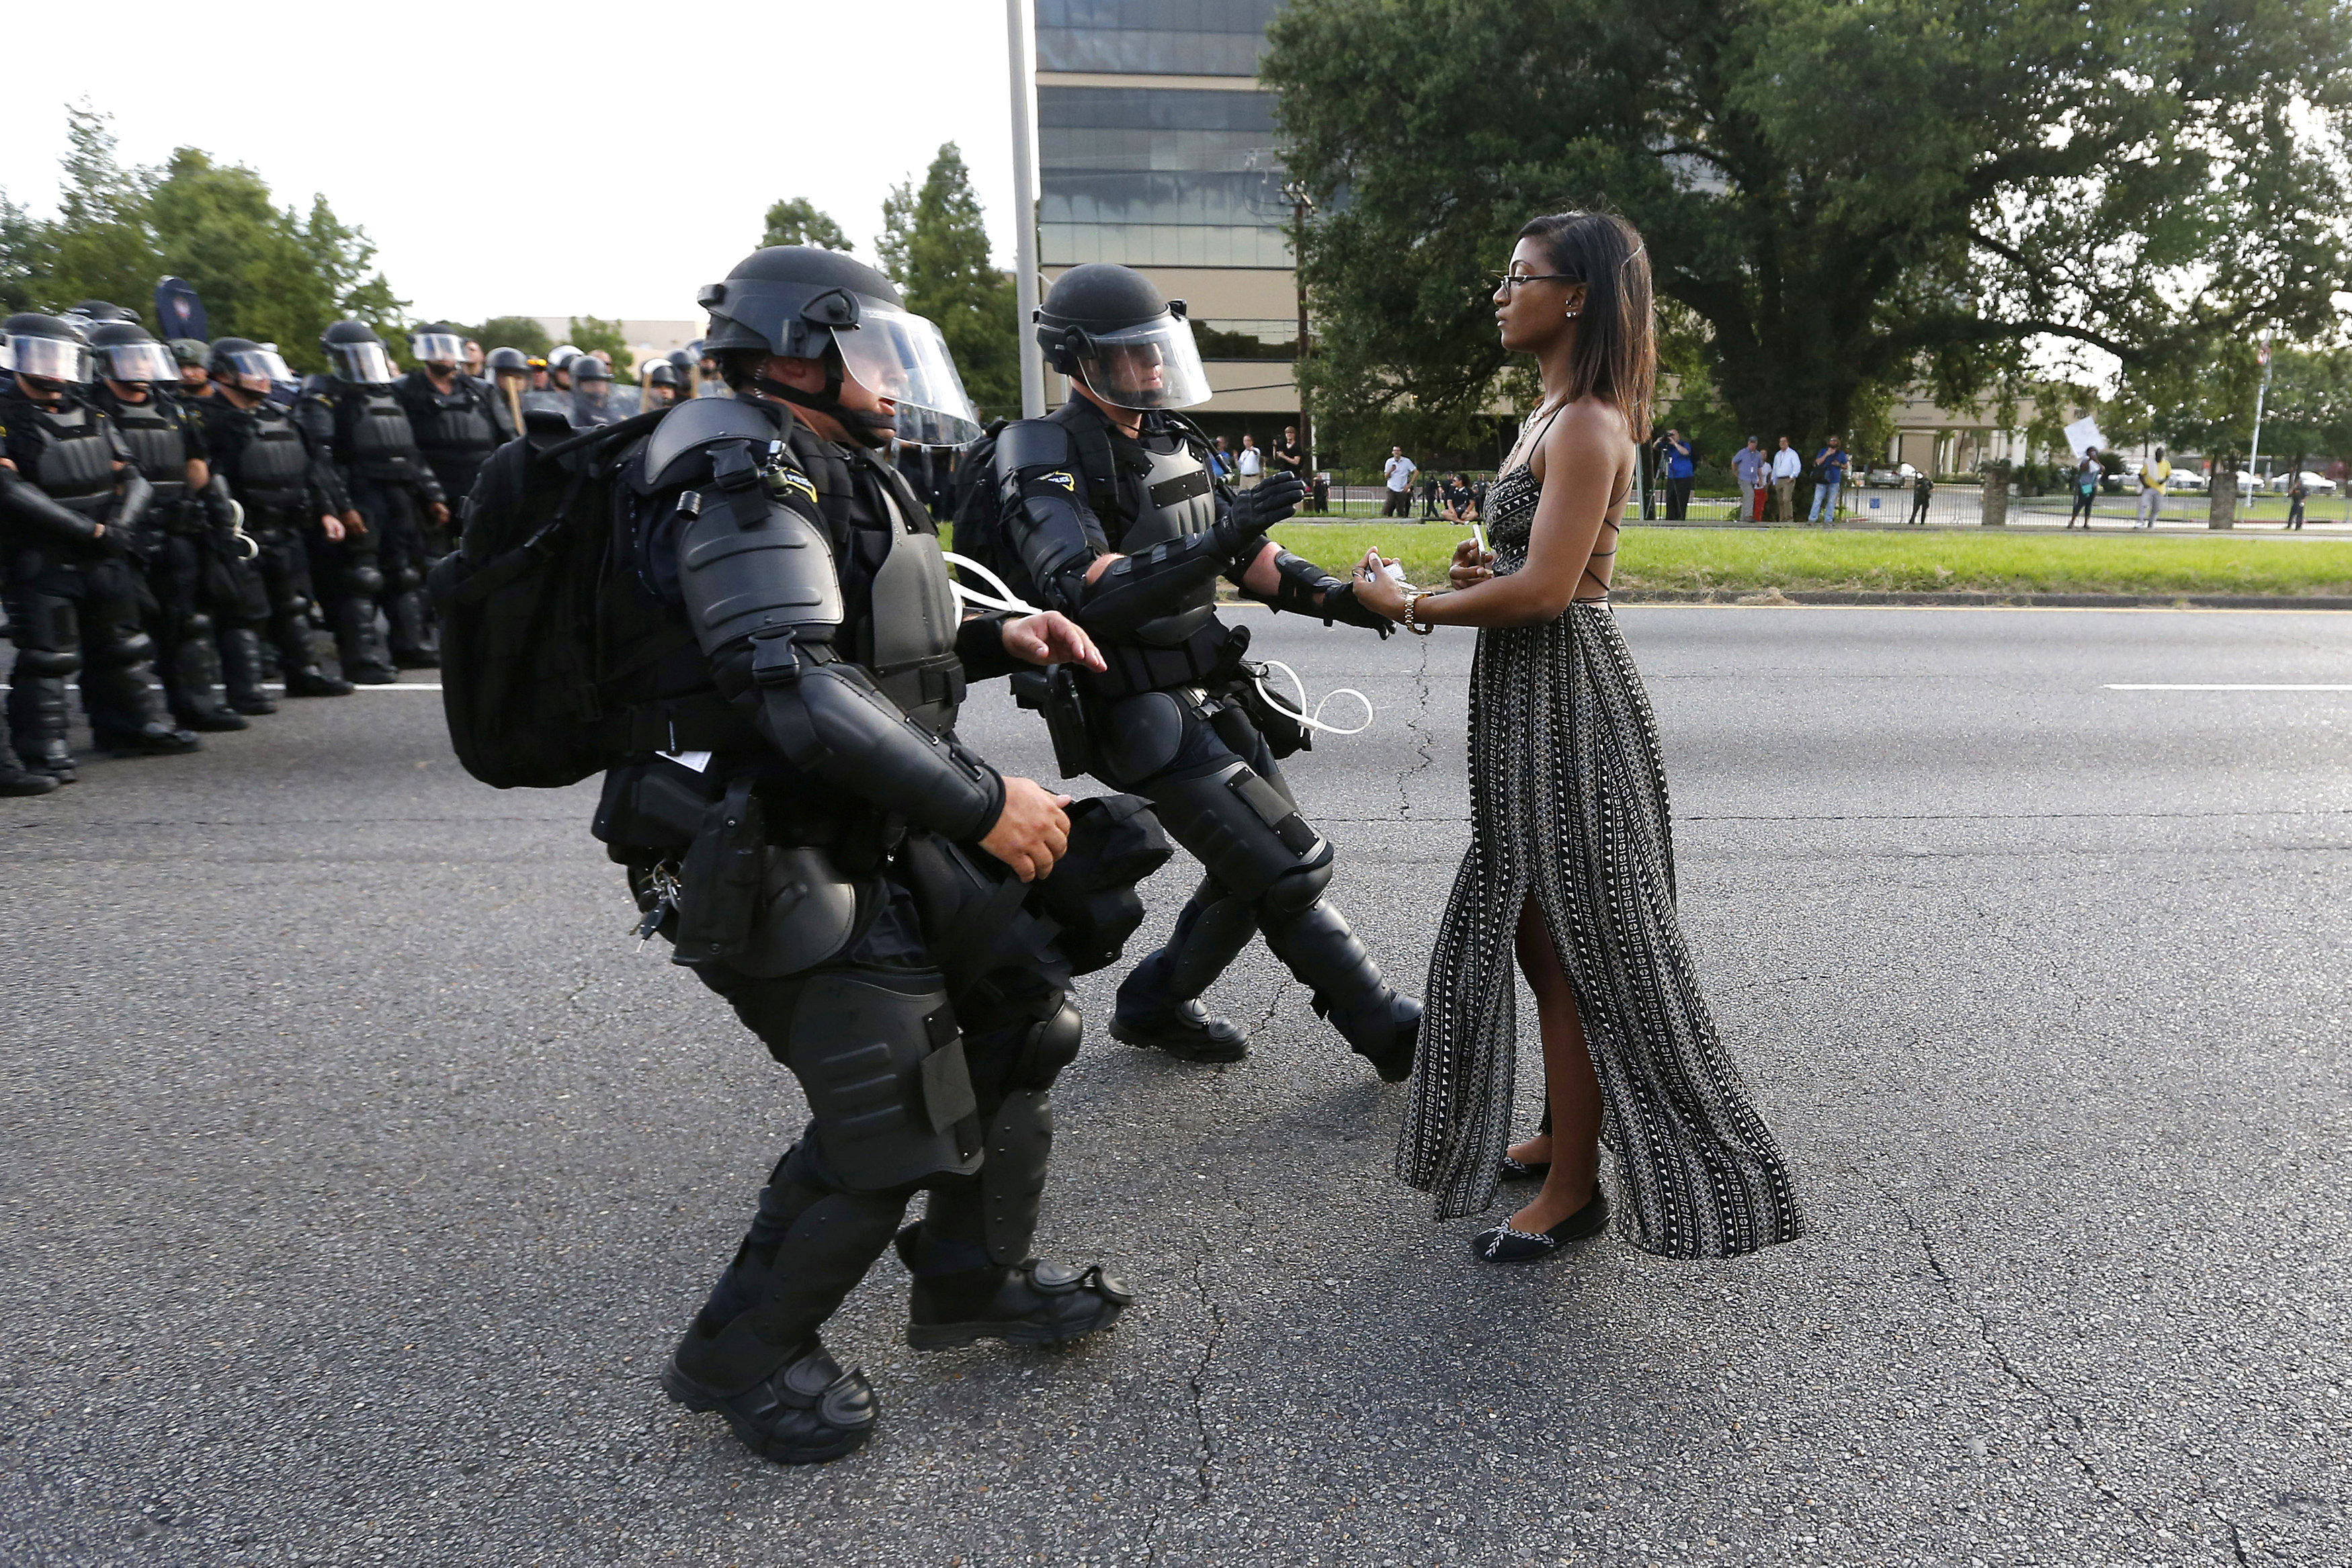 Ieshia Evans, woman in iconic Baton Rouge police protest photo